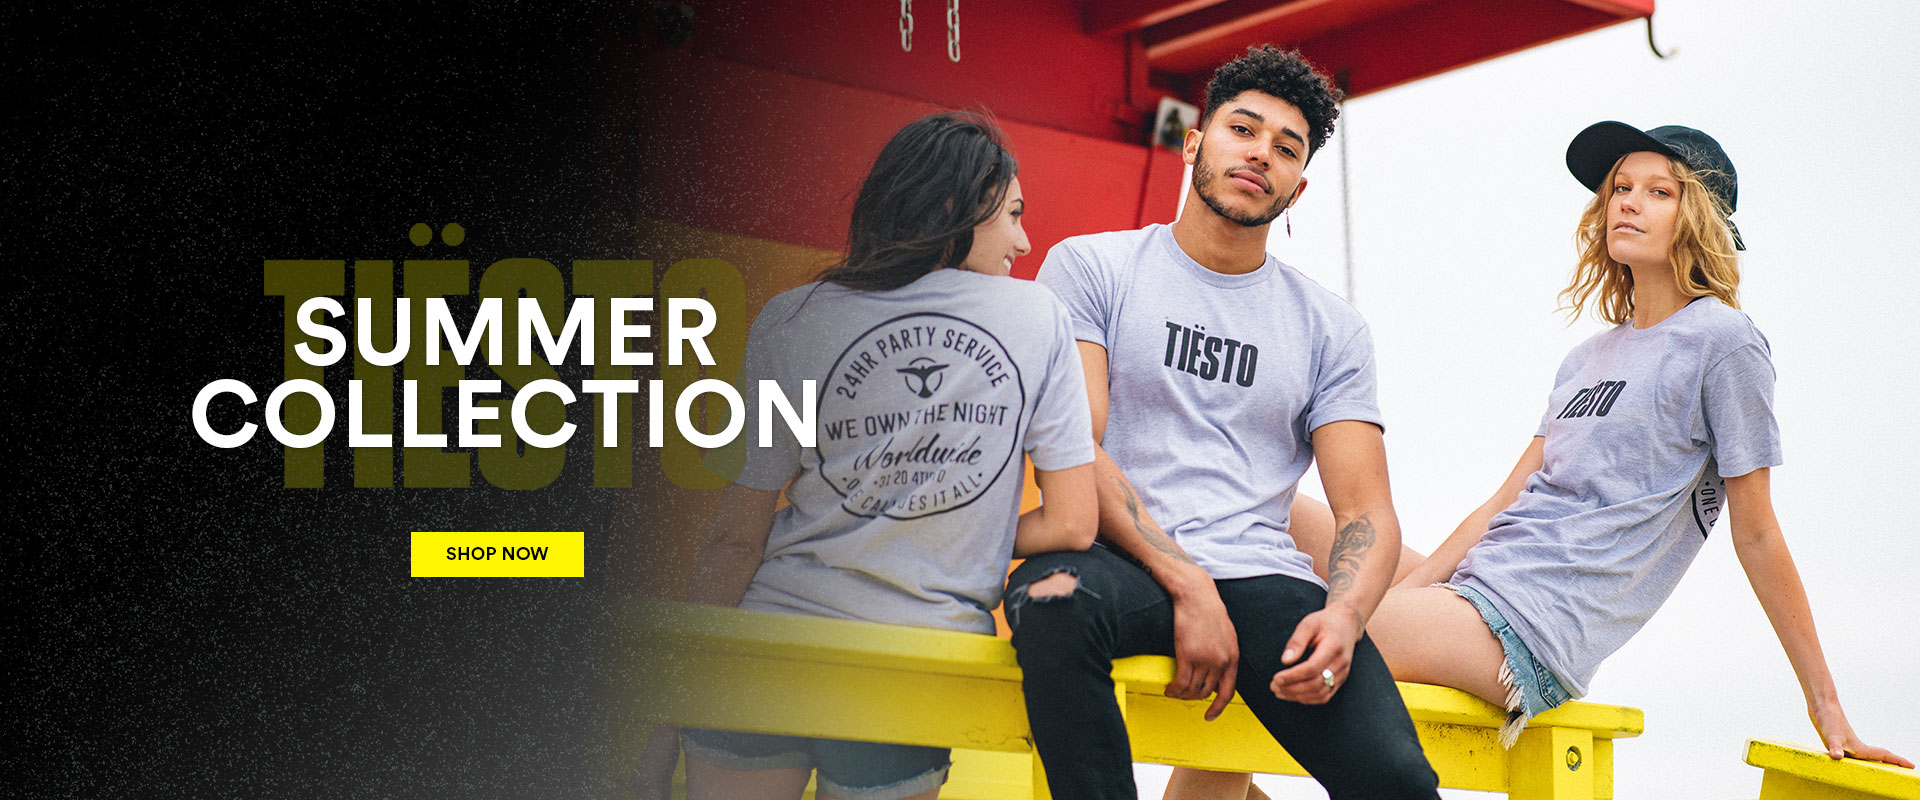 Summer Collection Available Now